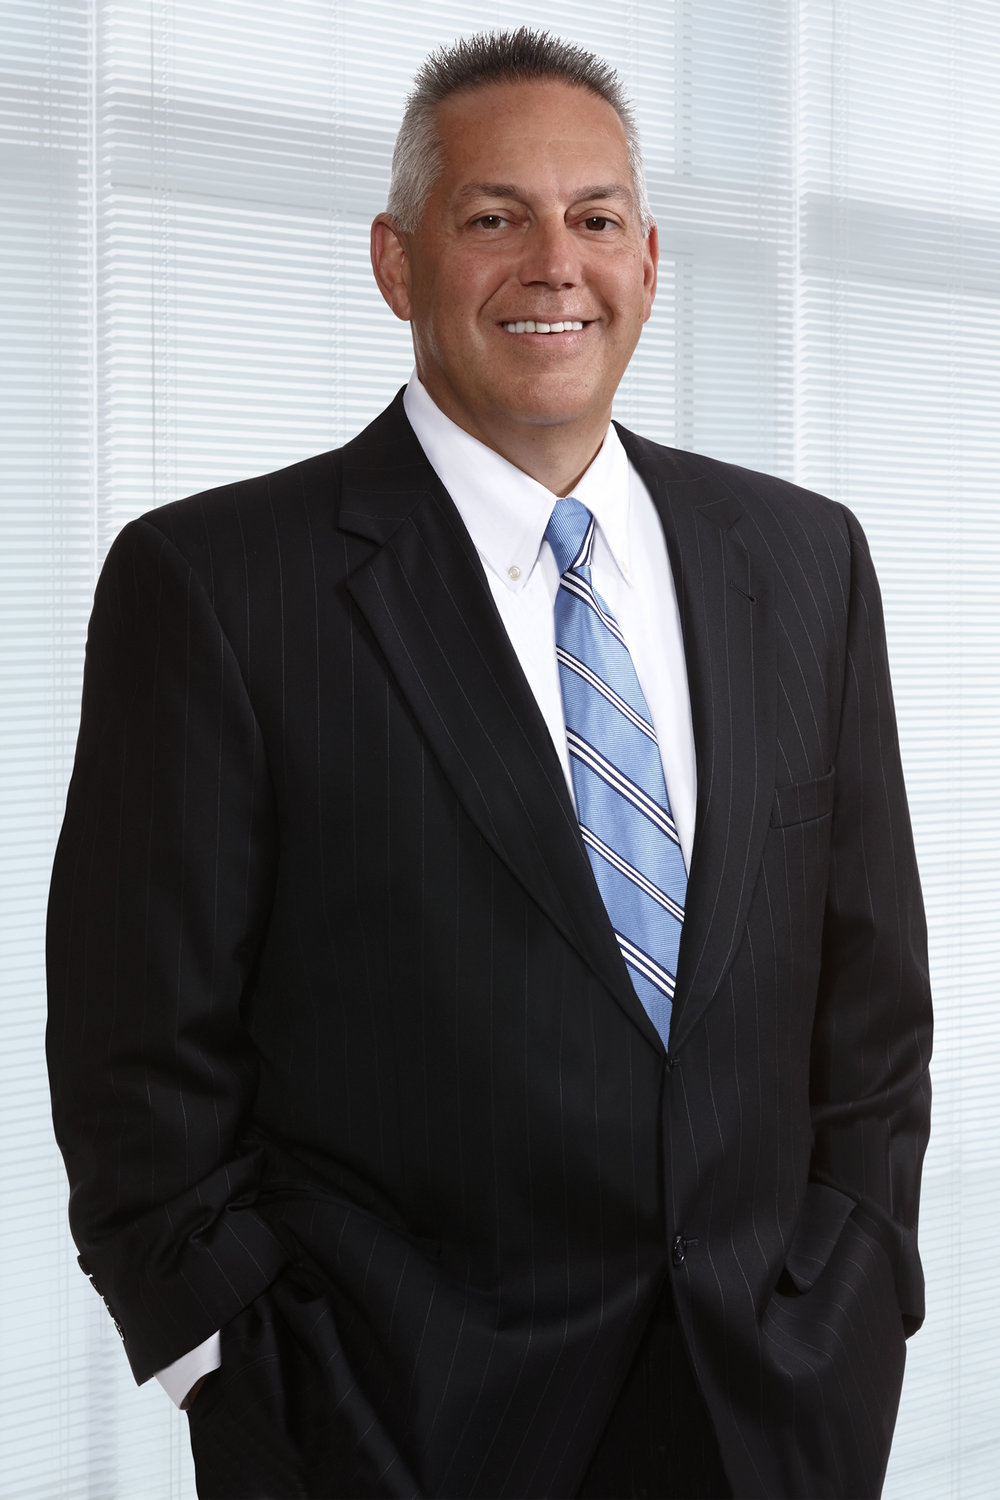 Anthony Rizzo Jr.   Owner & CEO   Anthony M. Rizzo, Jr. is the third of four children born to Anthony M. Rizzo Sr., founder of the Rizzo brand of companies. He attended Danbury schools, graduating from Henry Abbott Technical School in 1984. Upon graduation, Tony chose to work in the family business, A.M. Rizzo Electrical Contractors, Inc.; at a young age, Anthony started to help out by sweeping the A.M. Rizzo garage, placing material on the shelves, and doing whatever else needed to be done.  Tony has been involved in every aspect of the family organization. Starting out as a warehouse clerk for A. M. Rizzo Electrical Contractors, Inc., he worked his way through the ranks as a mechanic, buyer, office manager, and project manager, becoming President of the Company in 1994. Immediately, he began to restructure the organization for future growth, growing the Rizzo brand across multiple platforms.